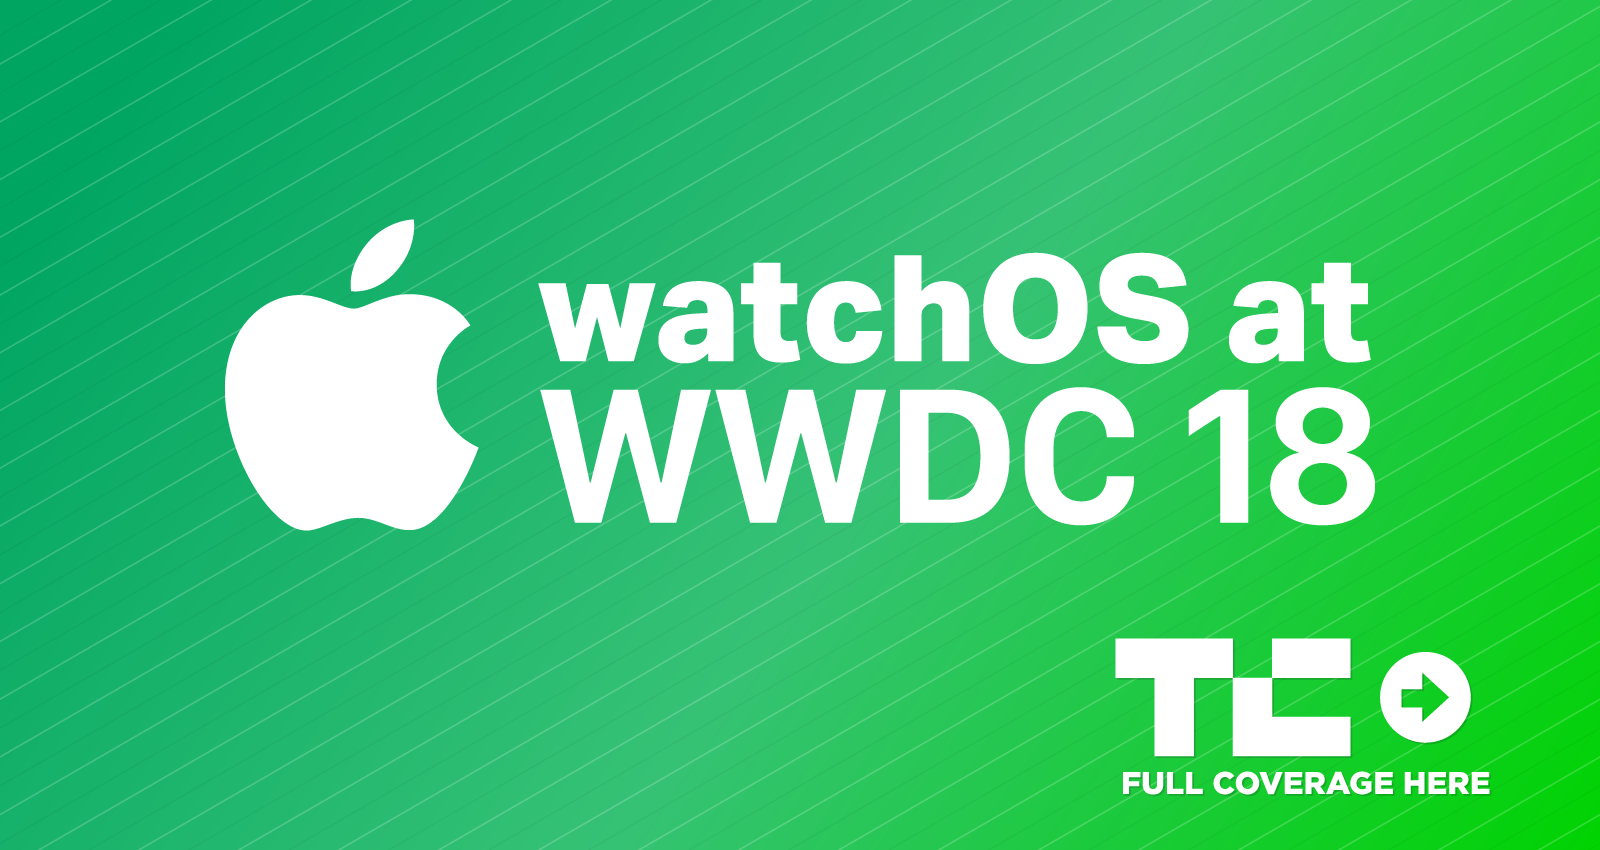 Apple Unveils watchOS 5 With Walkie-Talkie, Activity Competitions, Podcasts, More